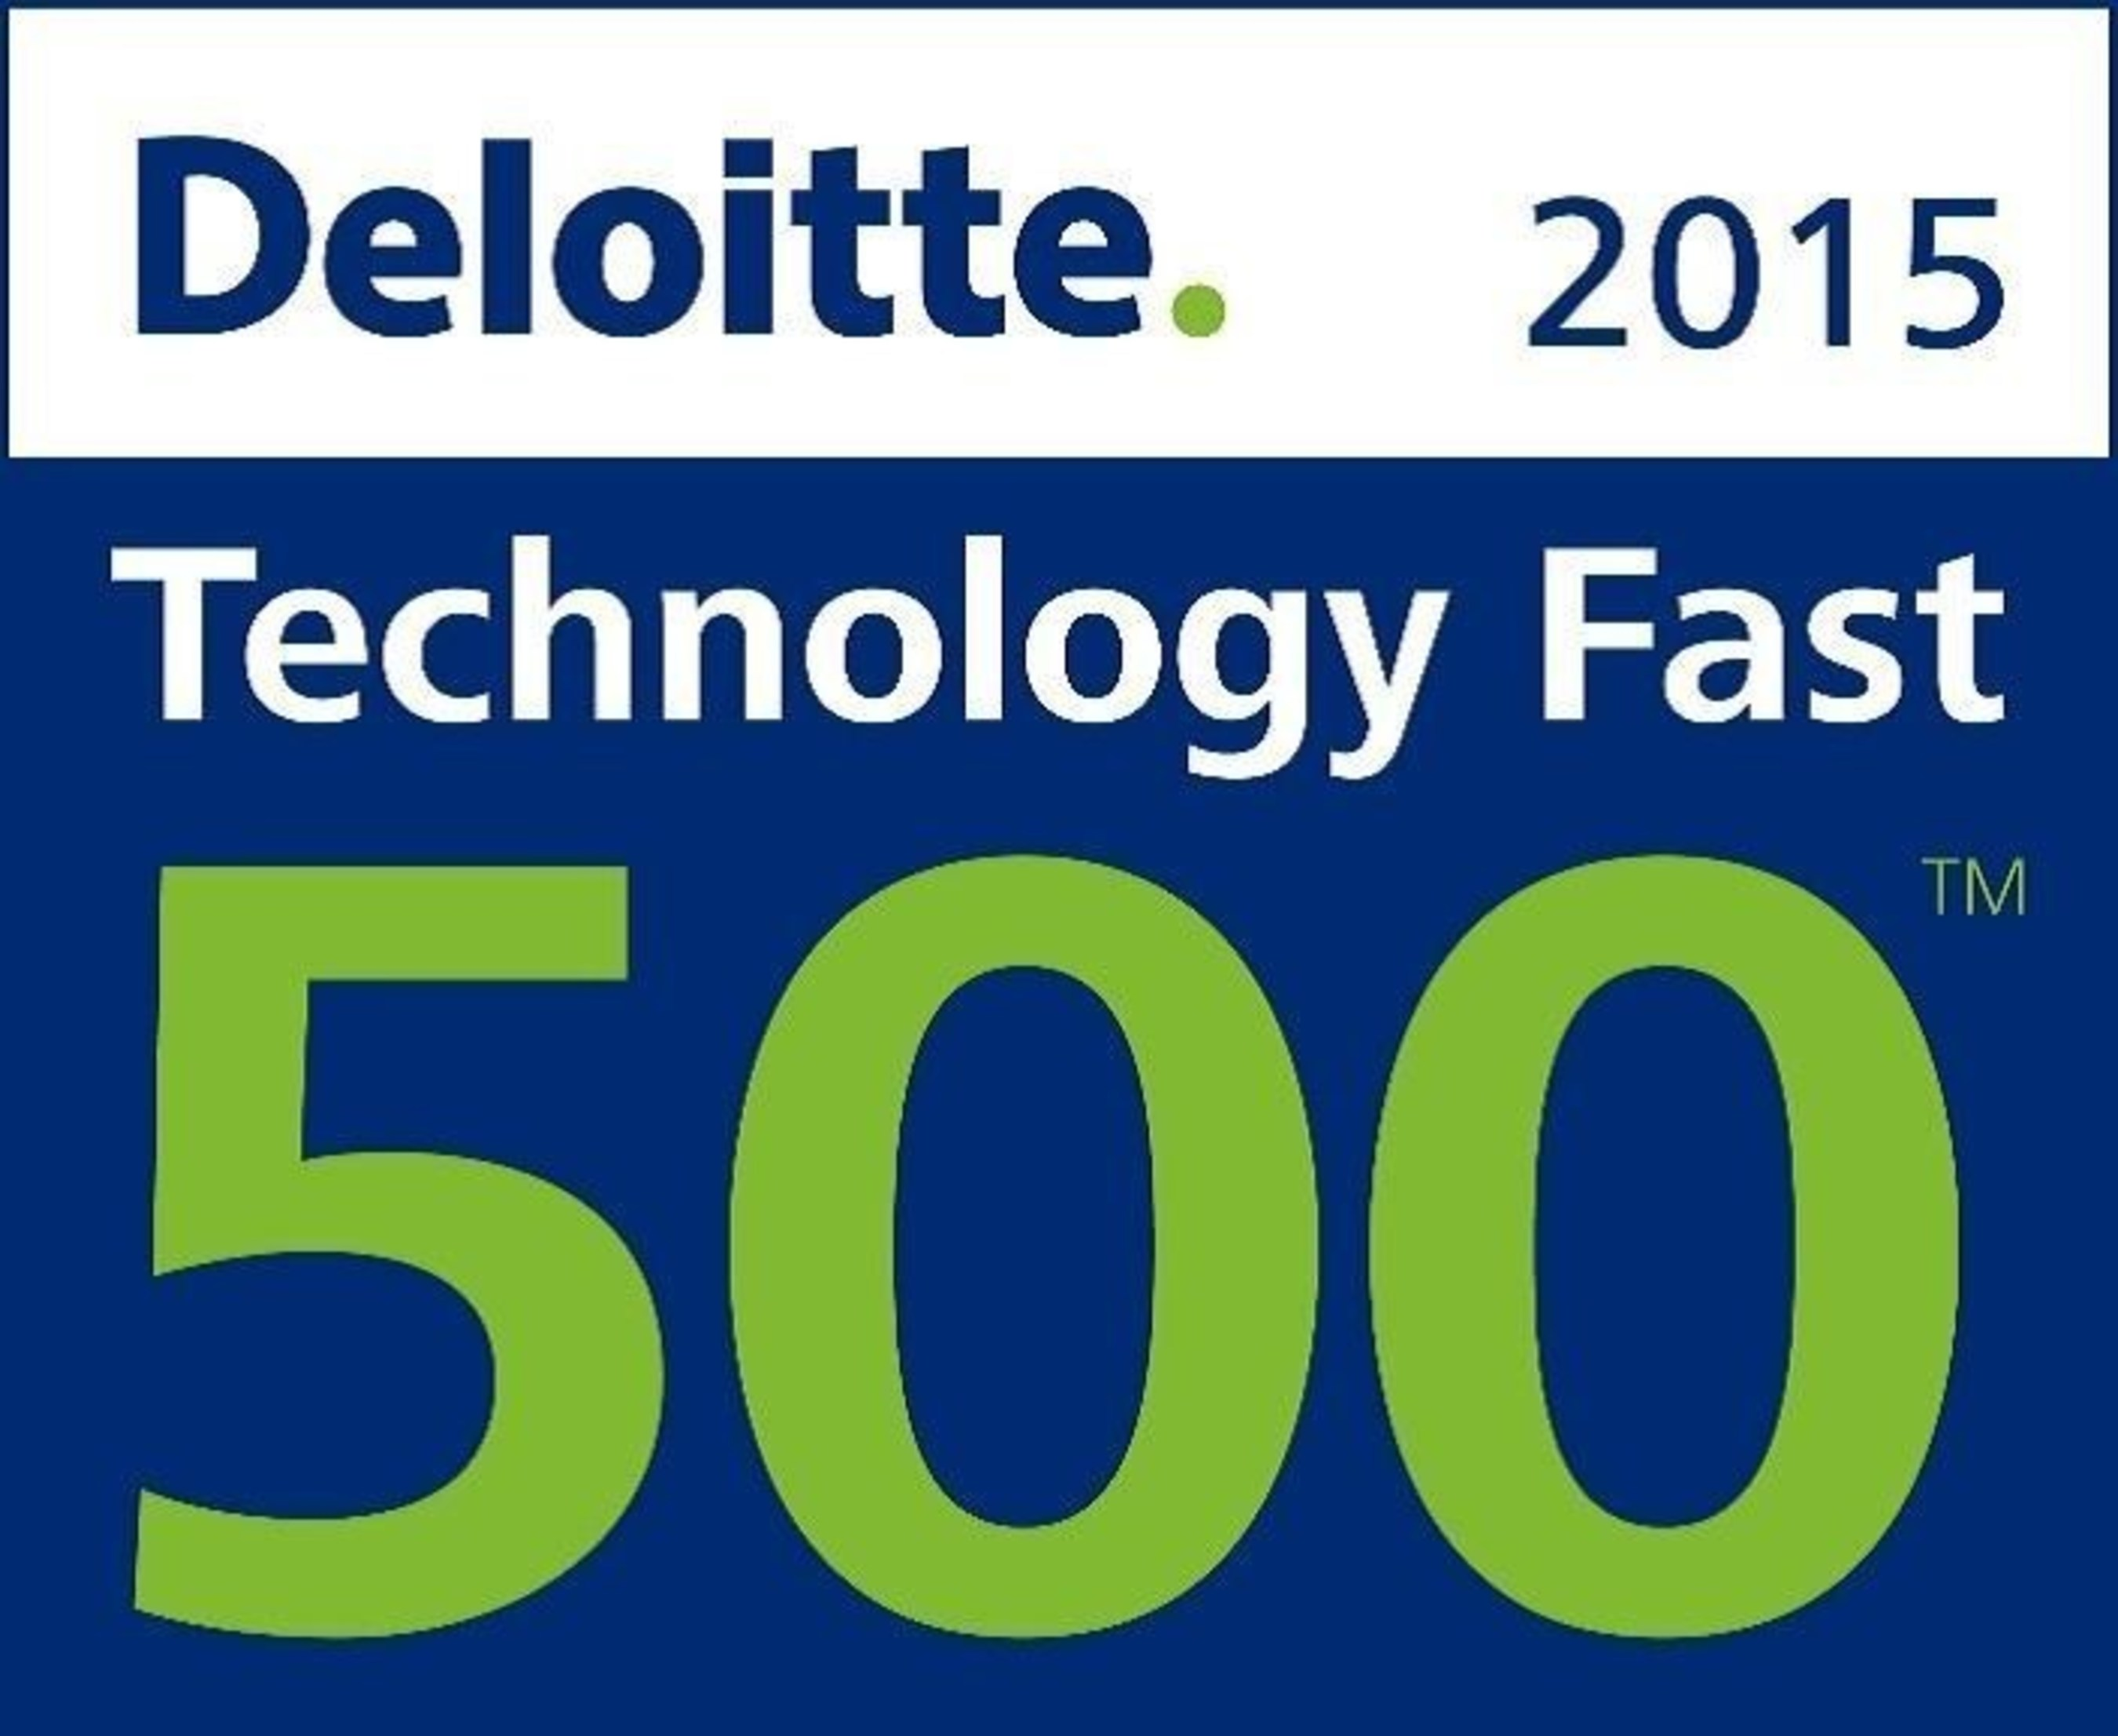 180fusion Ranked Number #124 Fastest Growing Company in North America on Deloitte's 2015 Technology Fast 500